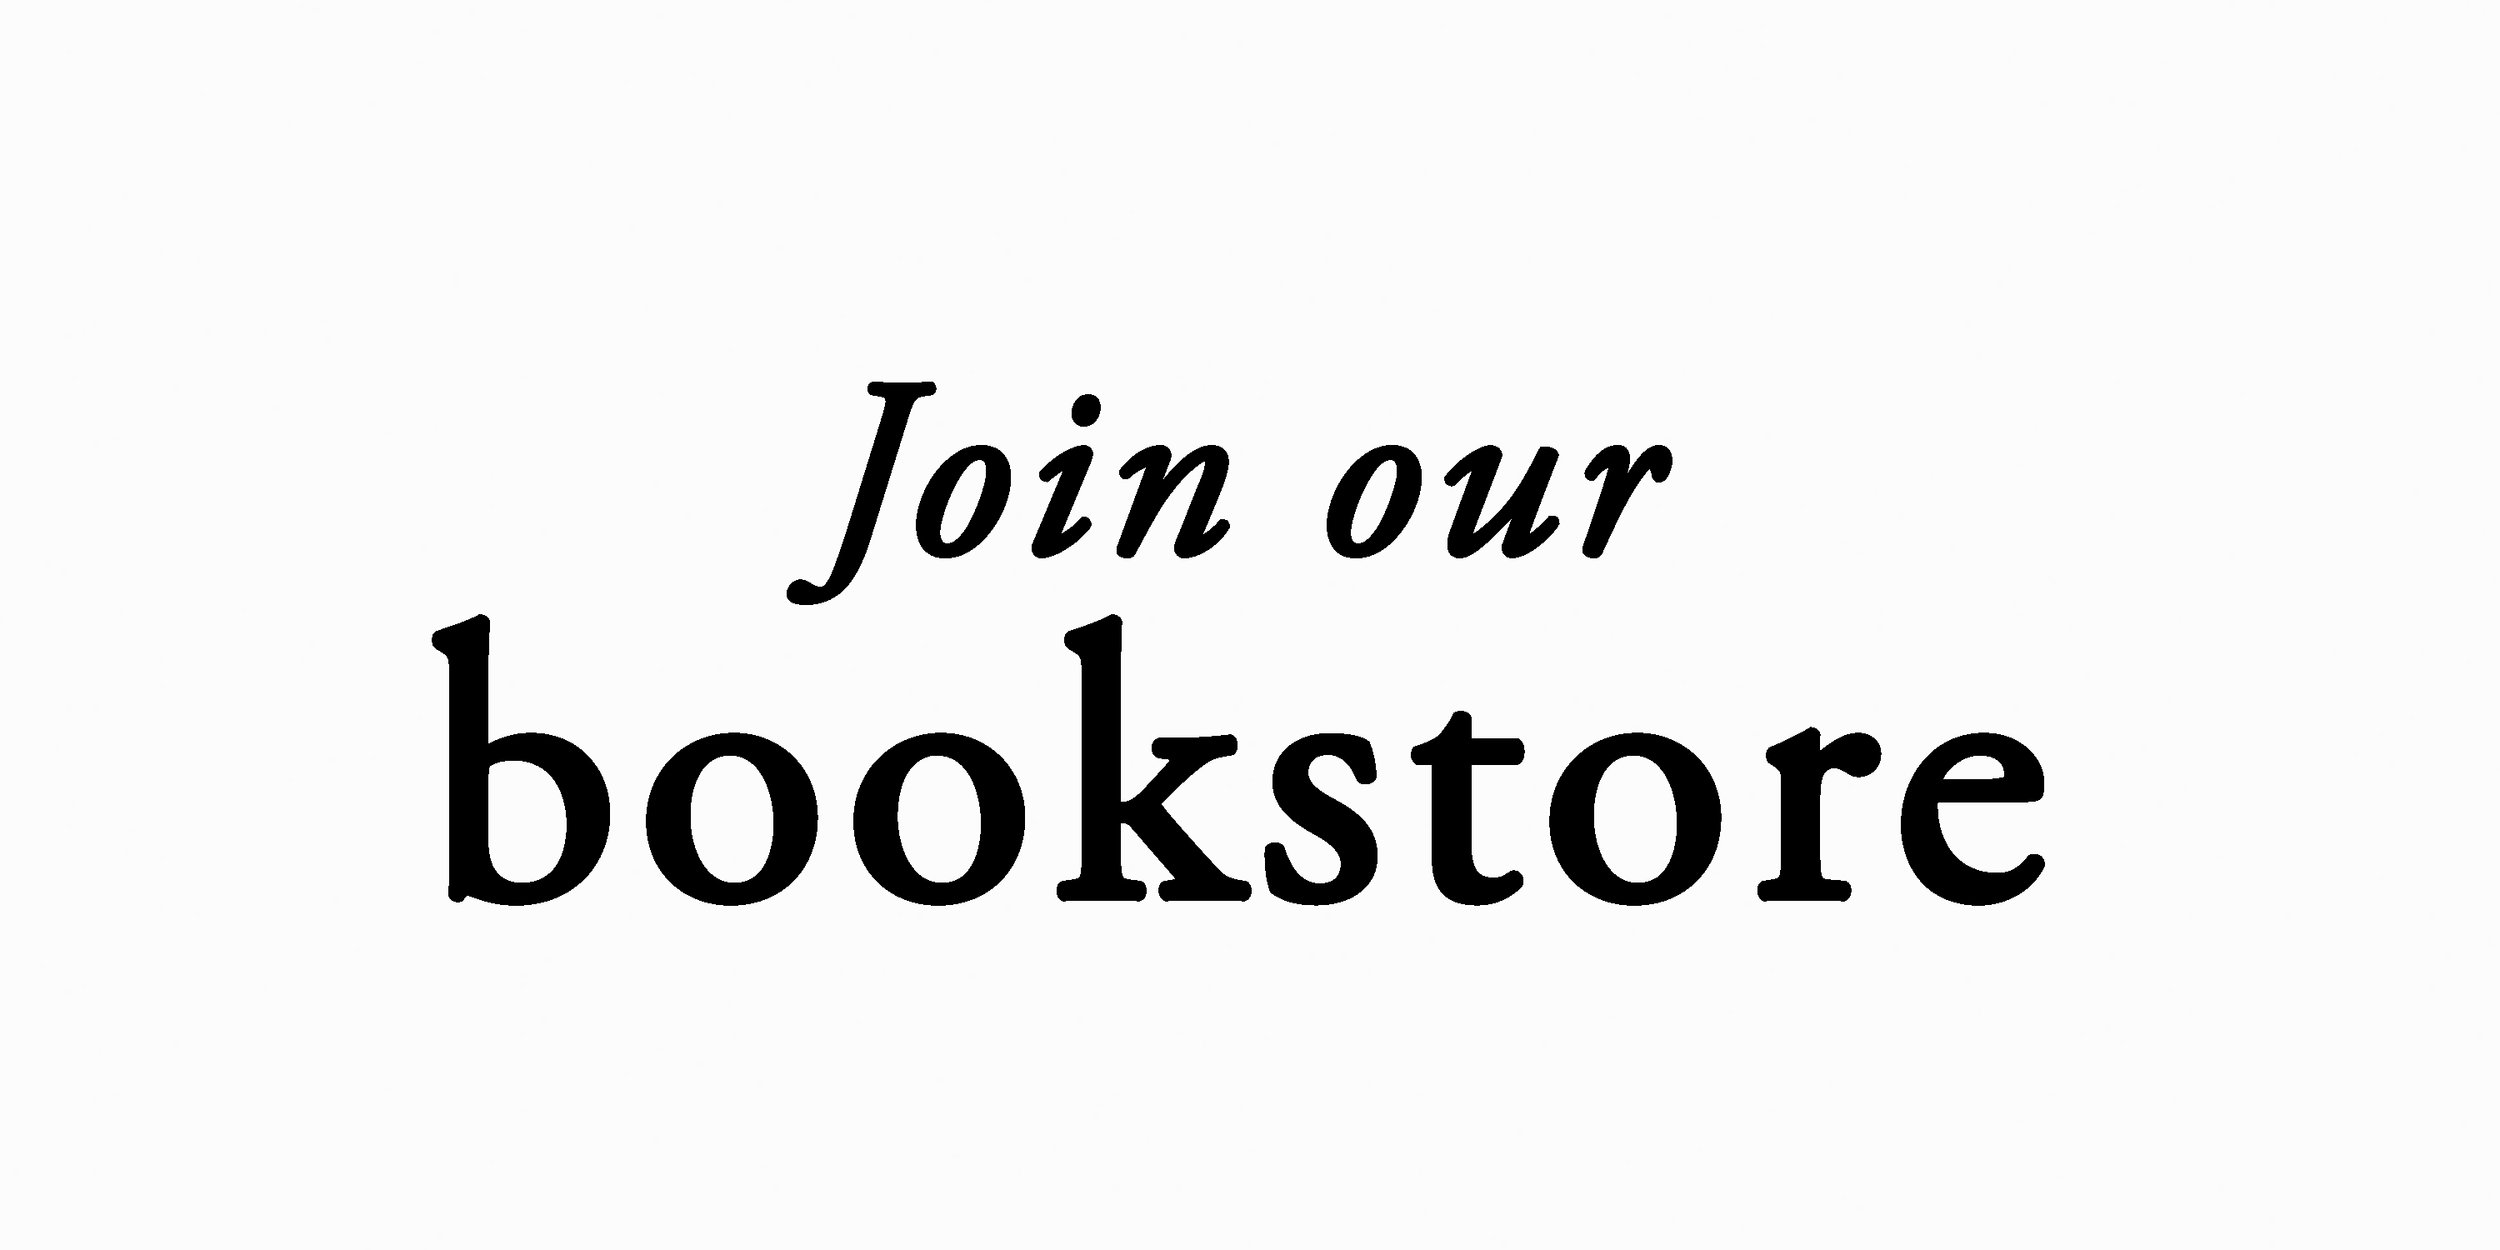 join our bookstore.jpg